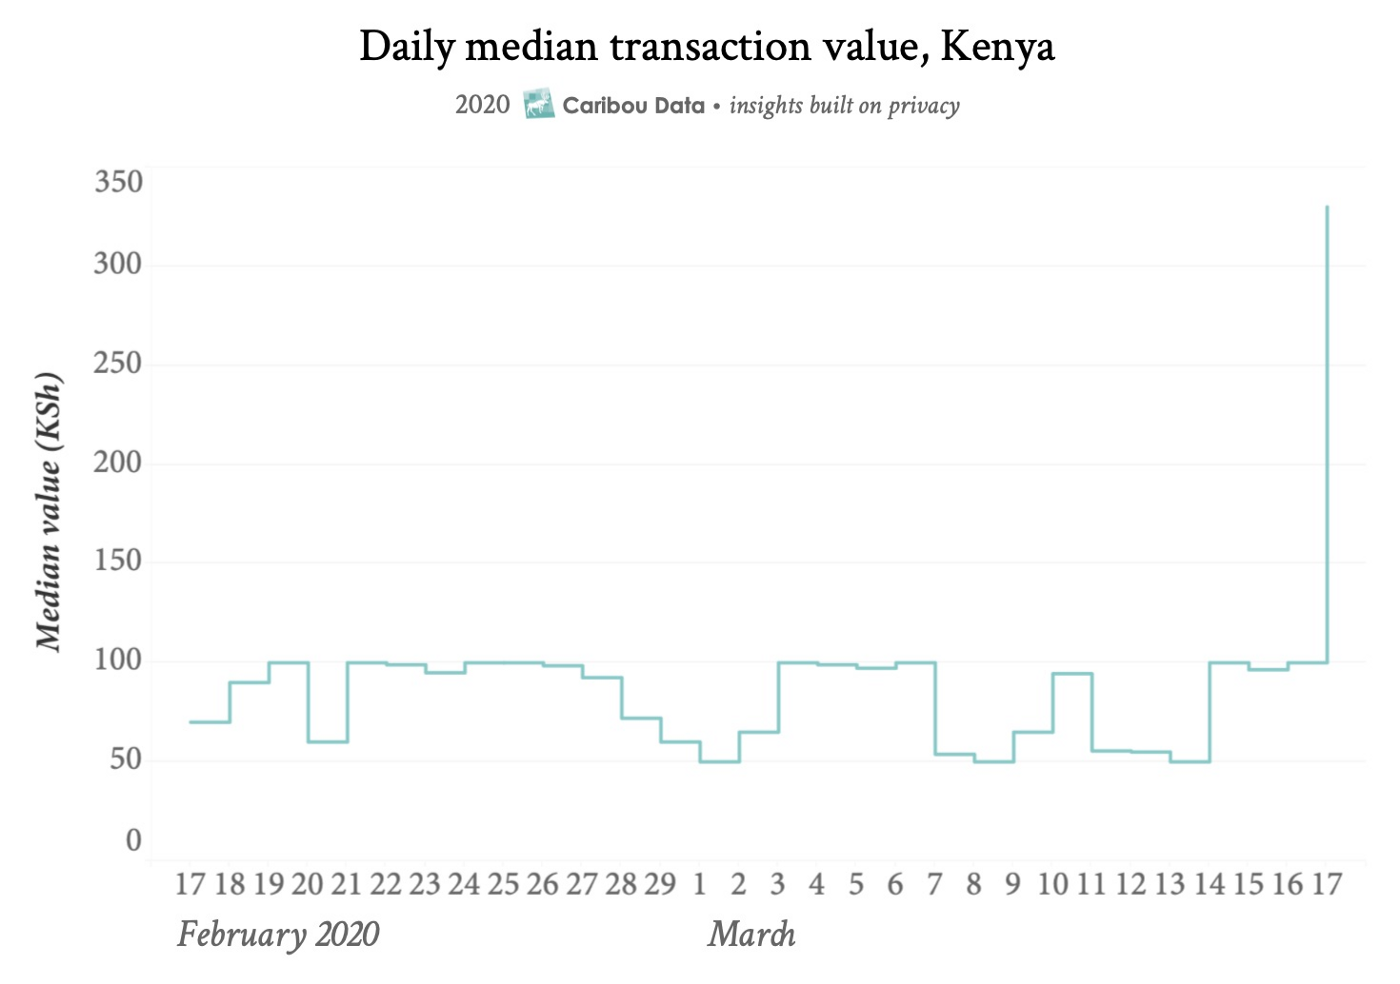 Figure 1: Graph showing an increase in daily median mobile money transaction value after the waiver on costs for transactions